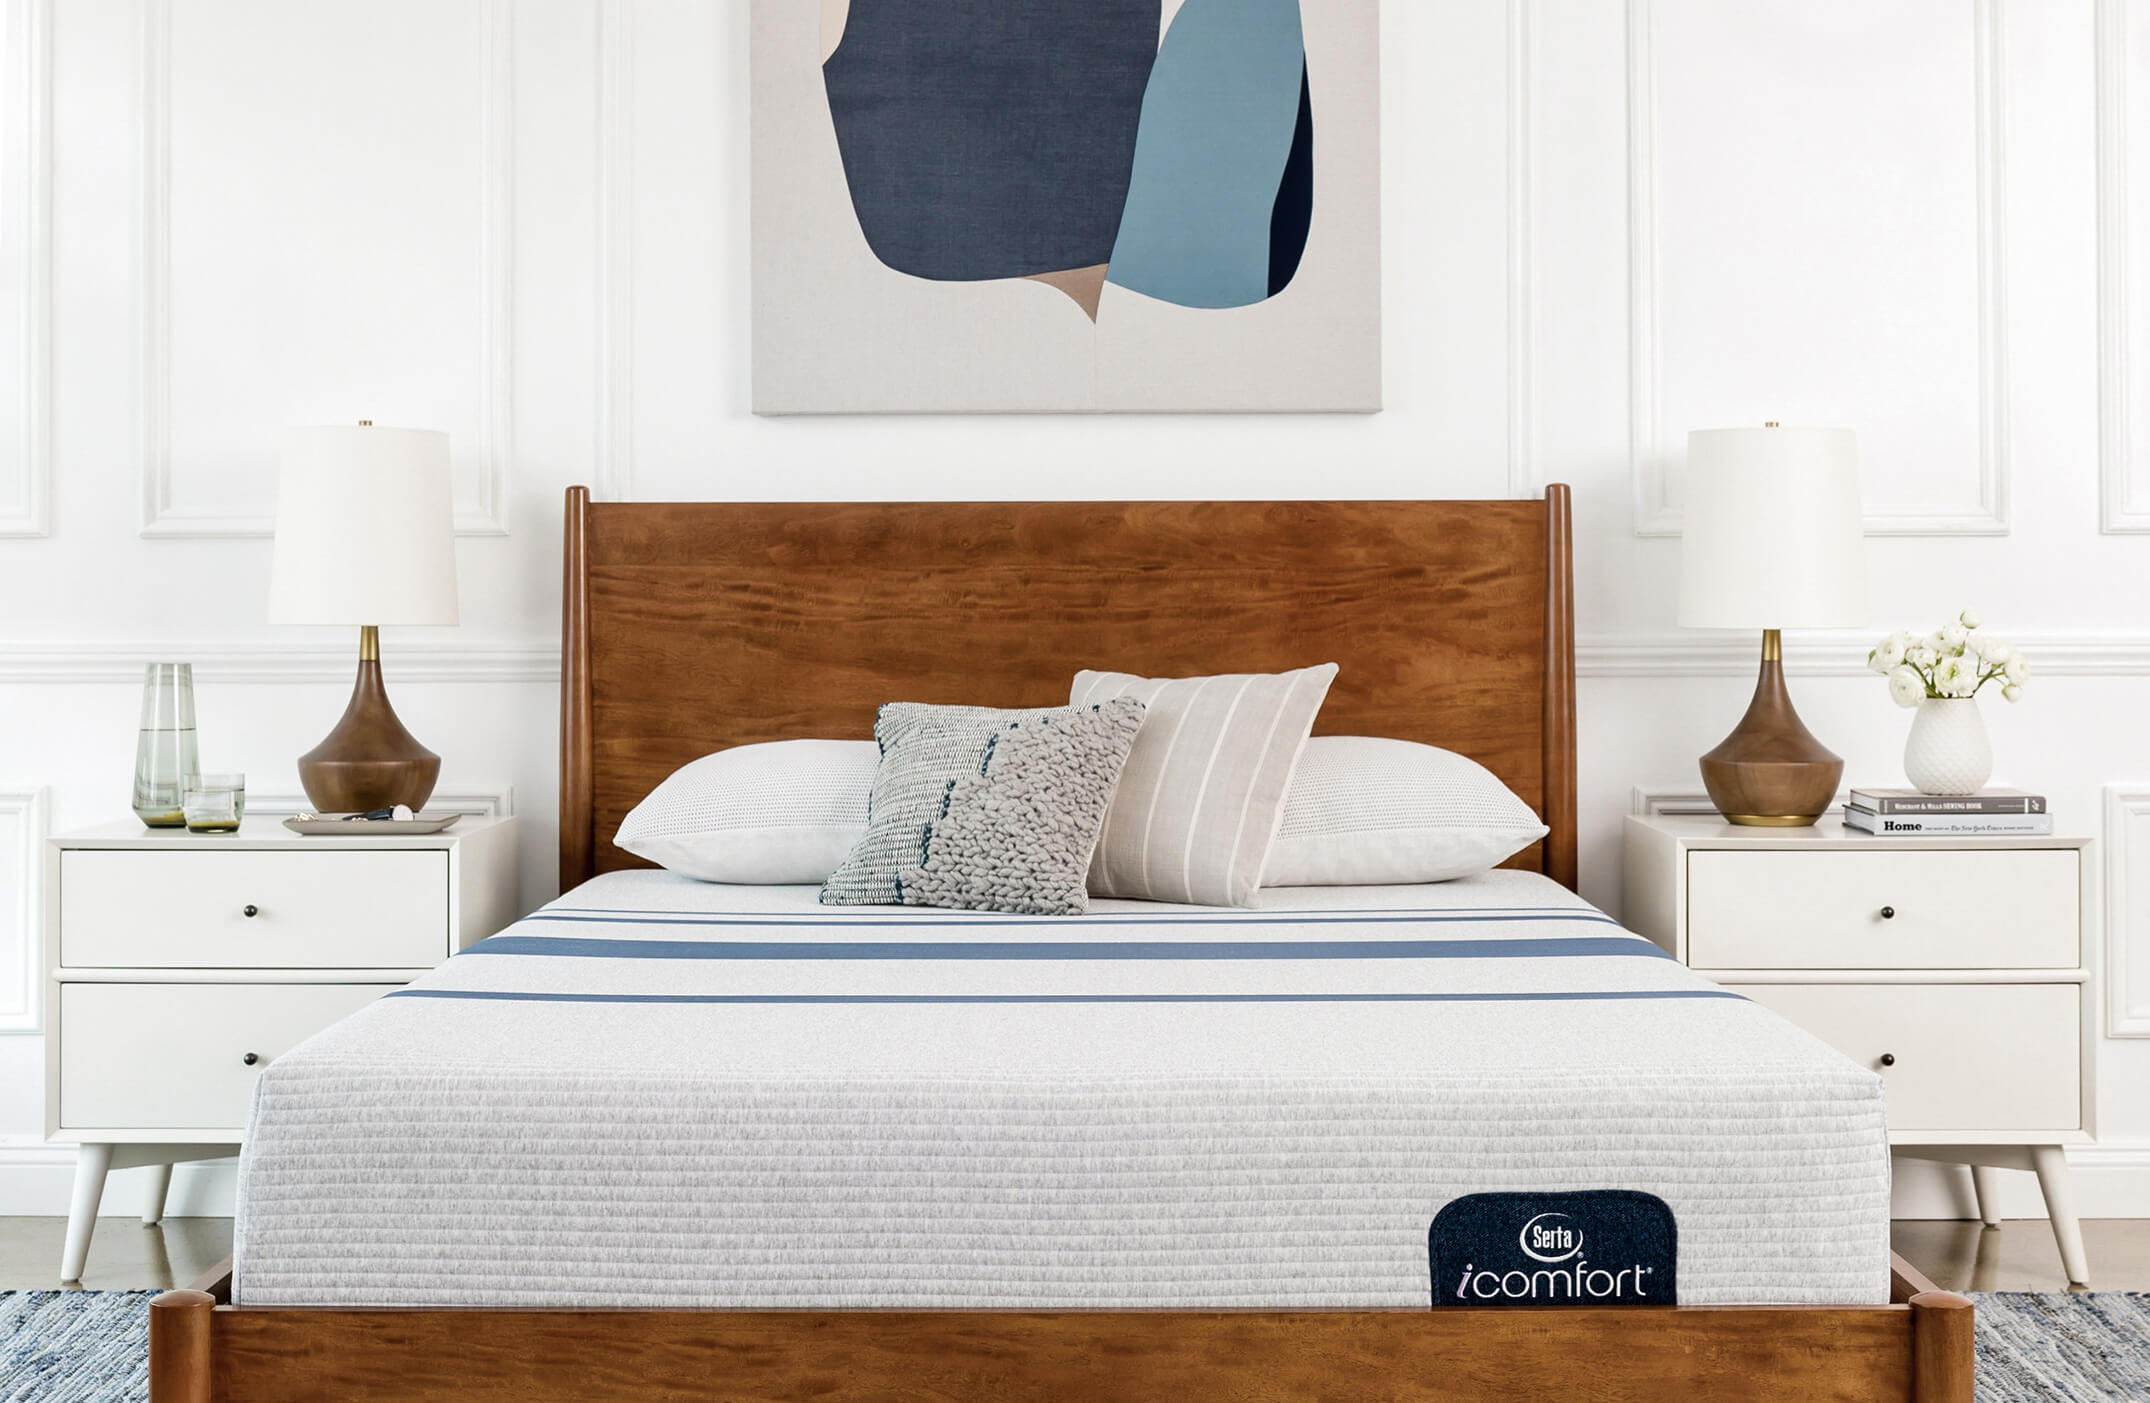 GINNY_MACDONALD_SERTA SIMMONS_MATTRESS_03_FEATURED_IMAGE